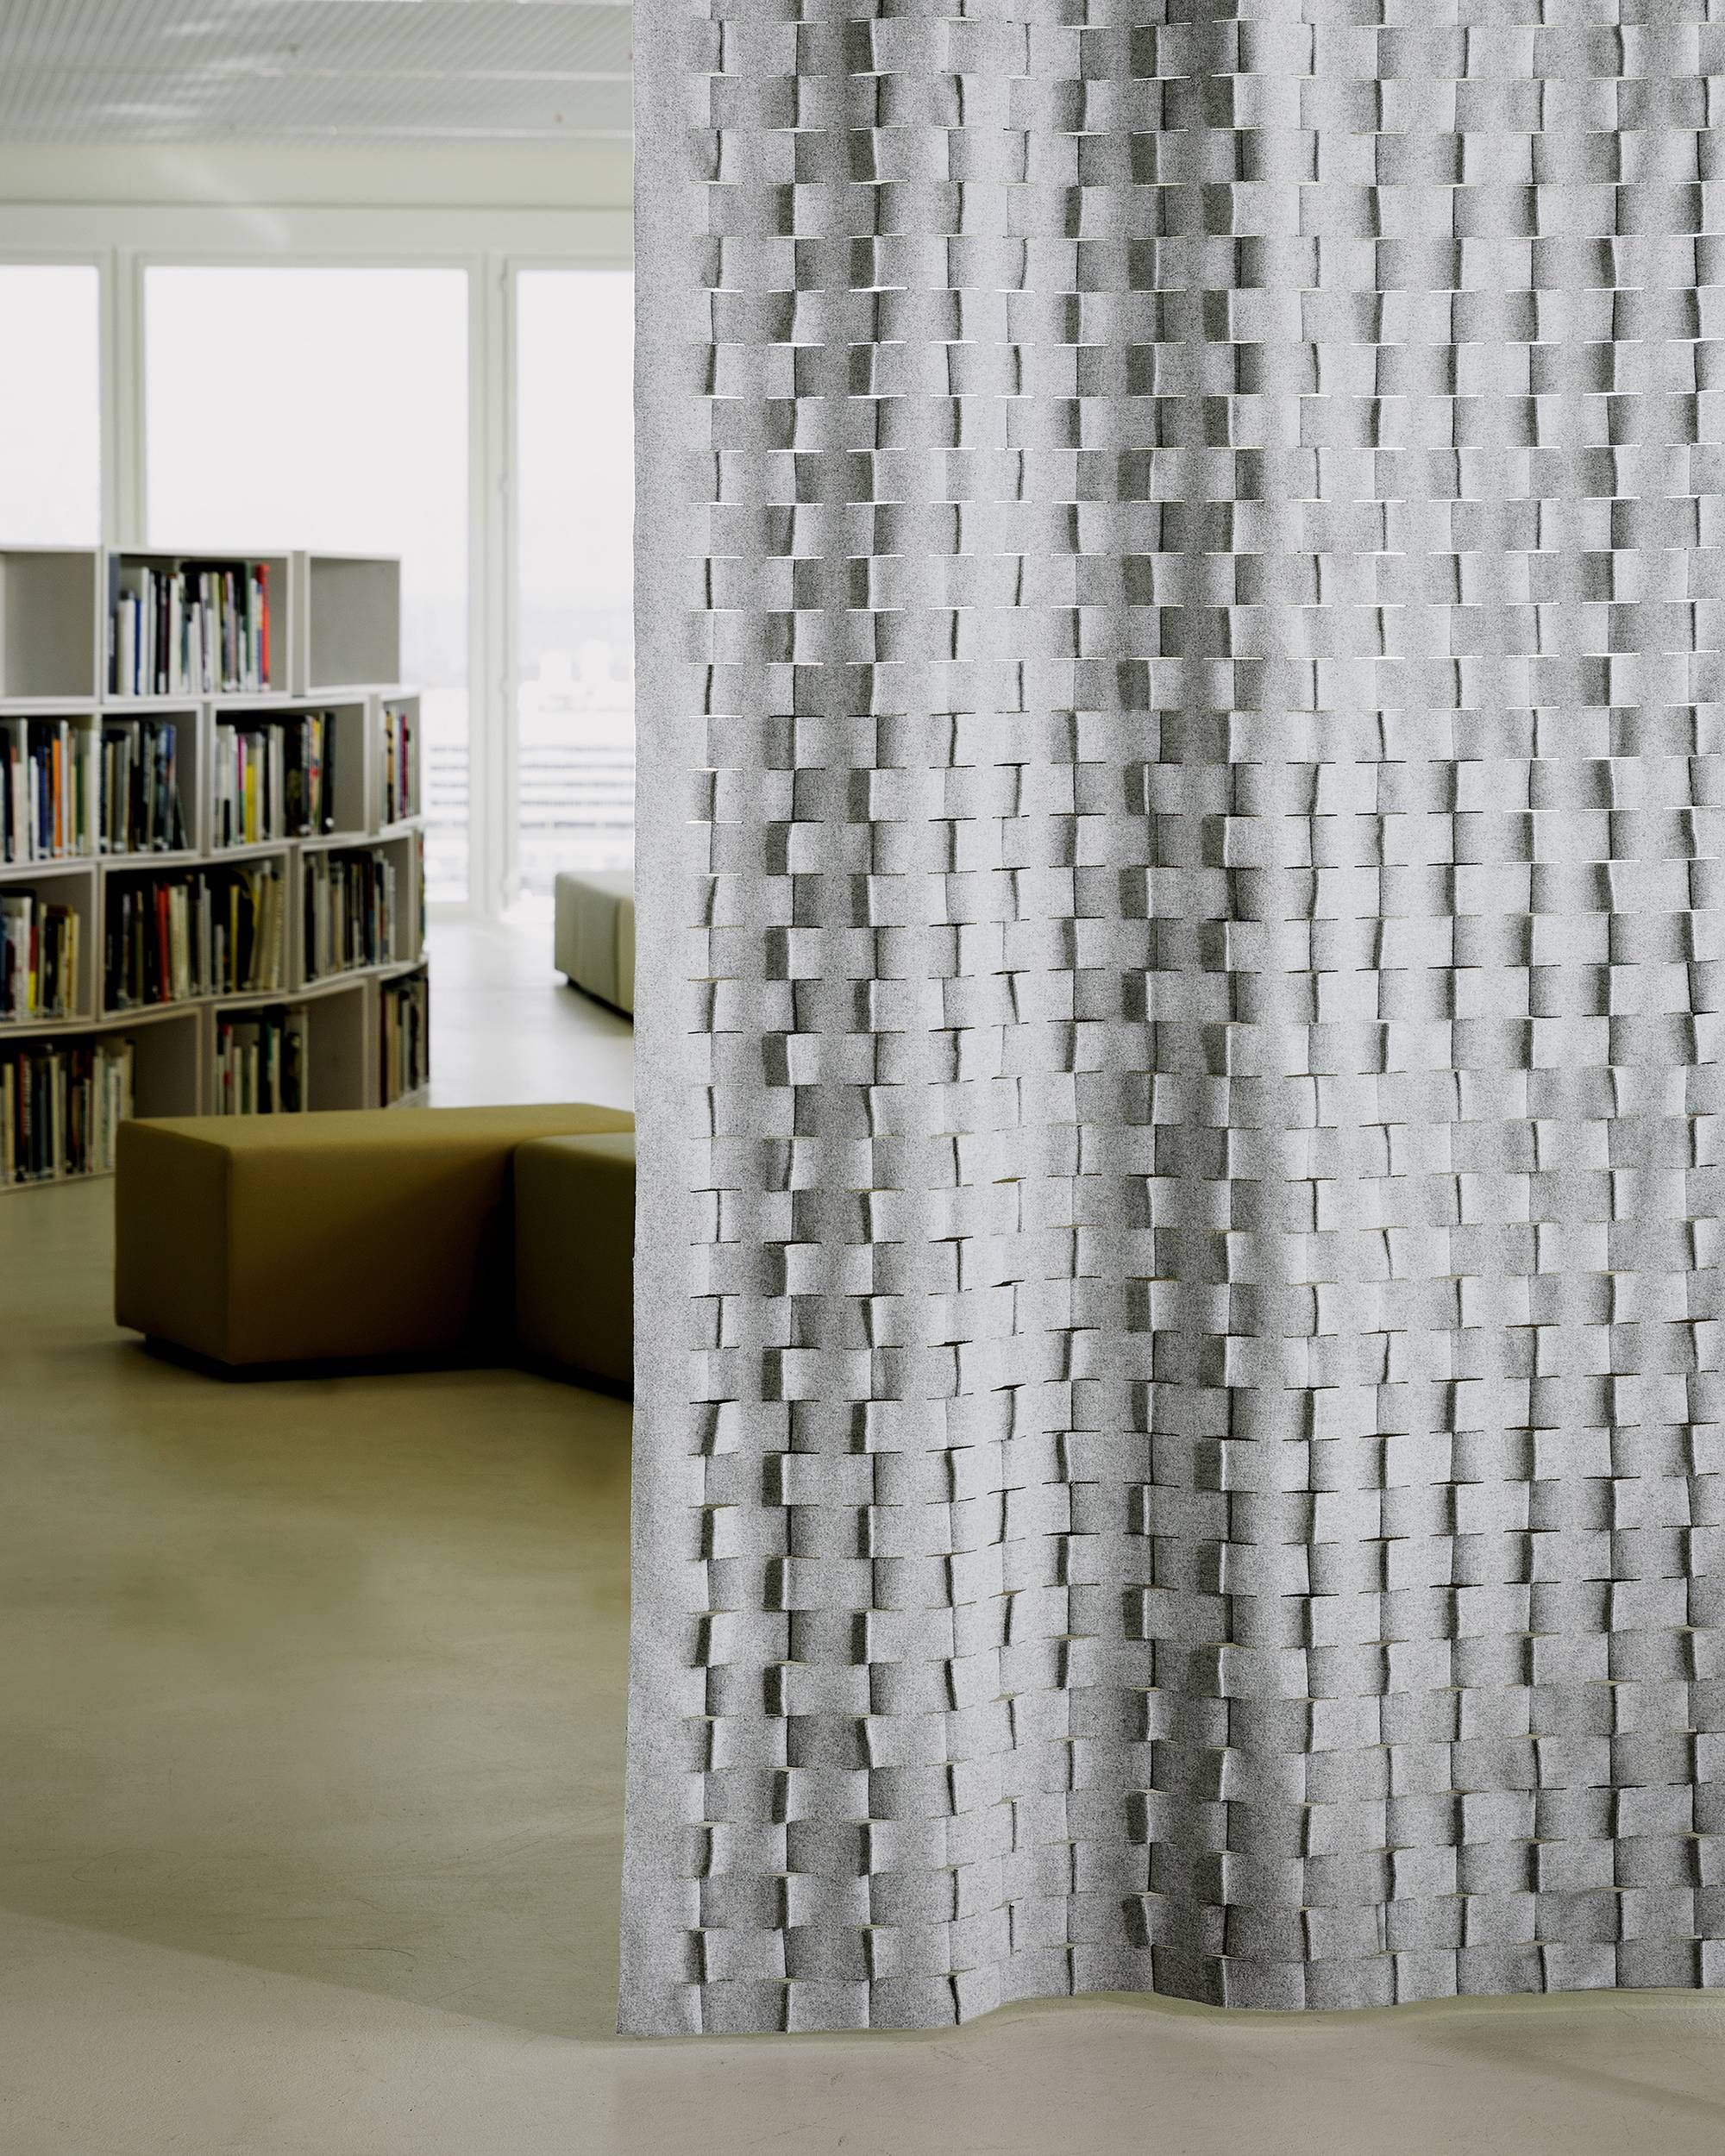 Pin By Maison Jegou On Rideaux Et Voilages Acoustic Panels Fabric Covered Walls Interior Design